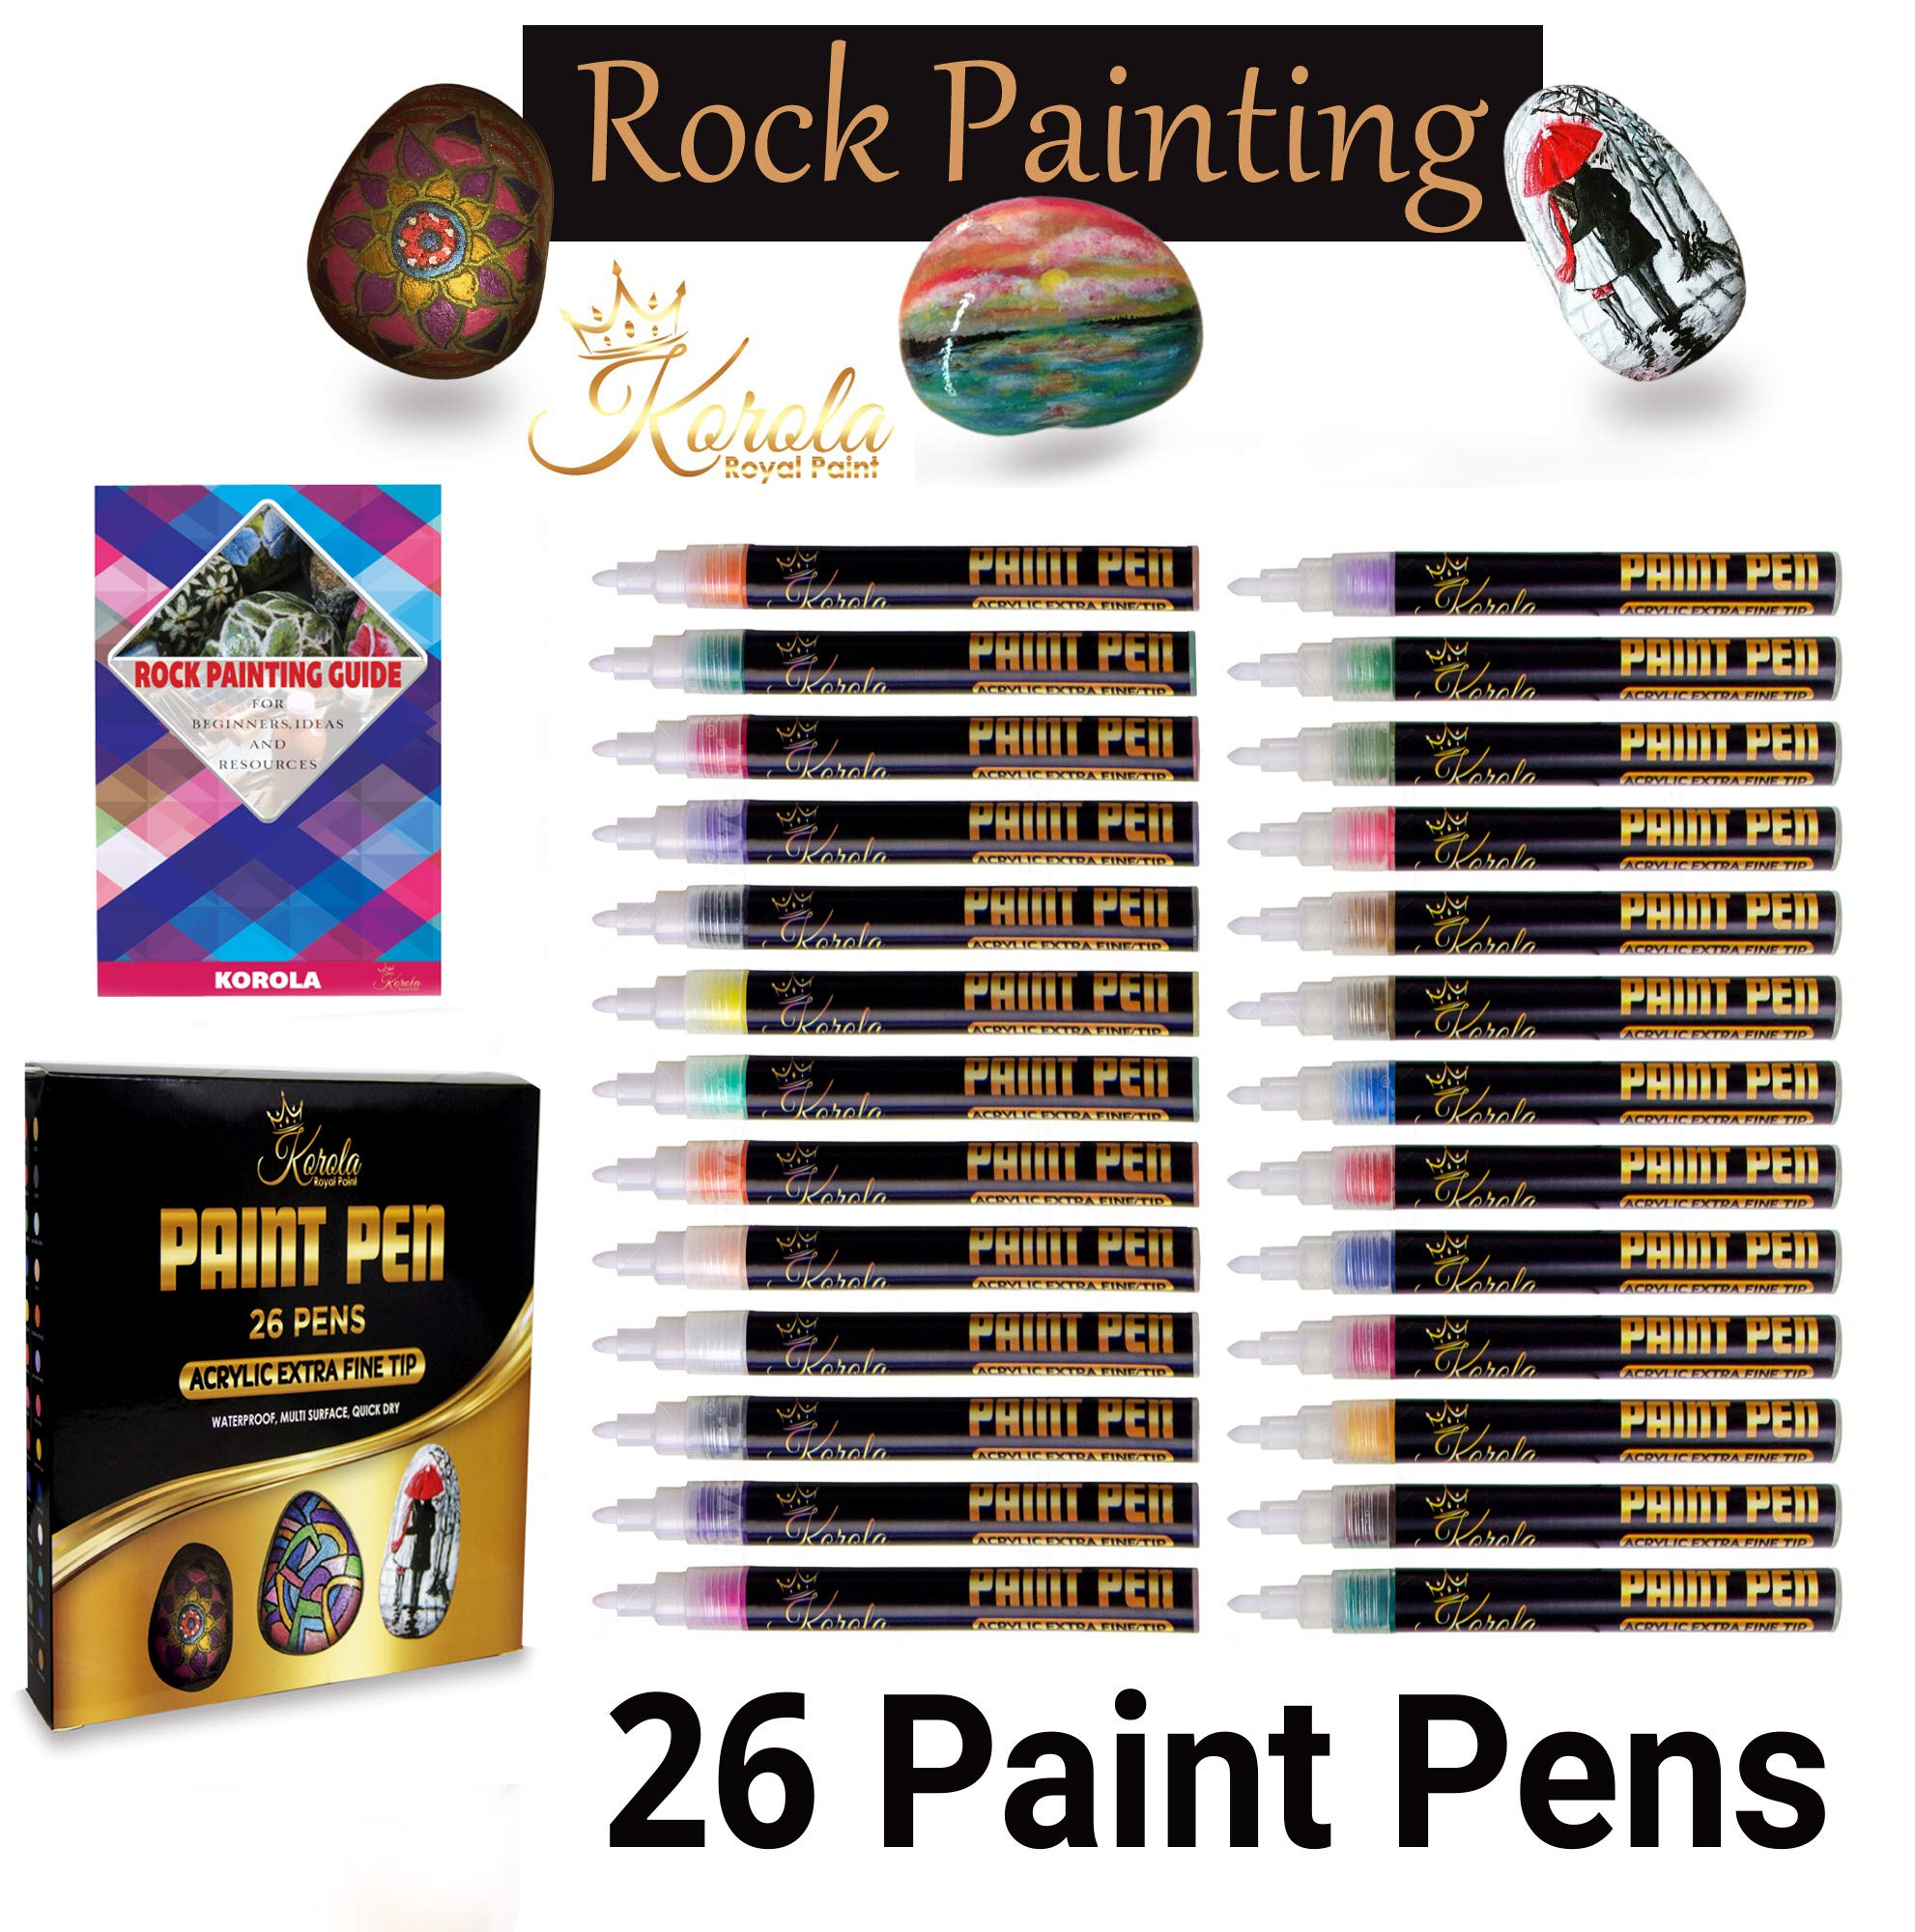 Set of 26 Acrylic Paint Pens Markers for Glass, Rock Painting, Ceramic, Leather, Wood, Metal, Canvas Point. Water Based Extra Fine Point Opaque Ink, Vibrant Colors for Must Multi Surfaces by Korola